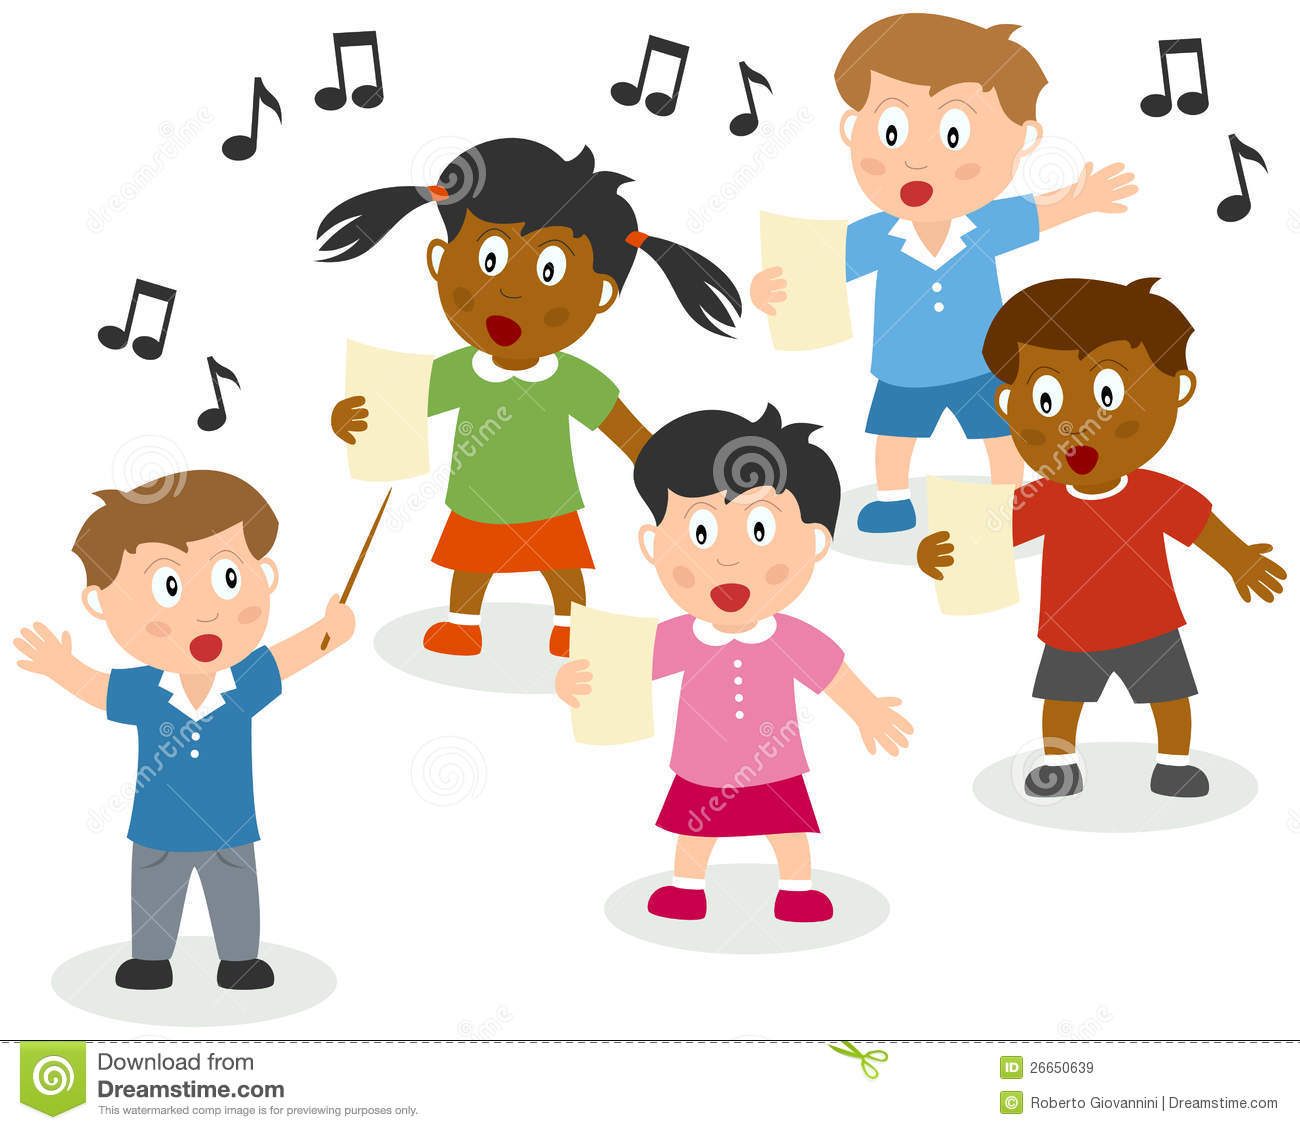 American singing clipart jpg library stock 95+ Kids Singing Clipart | ClipartLook jpg library stock